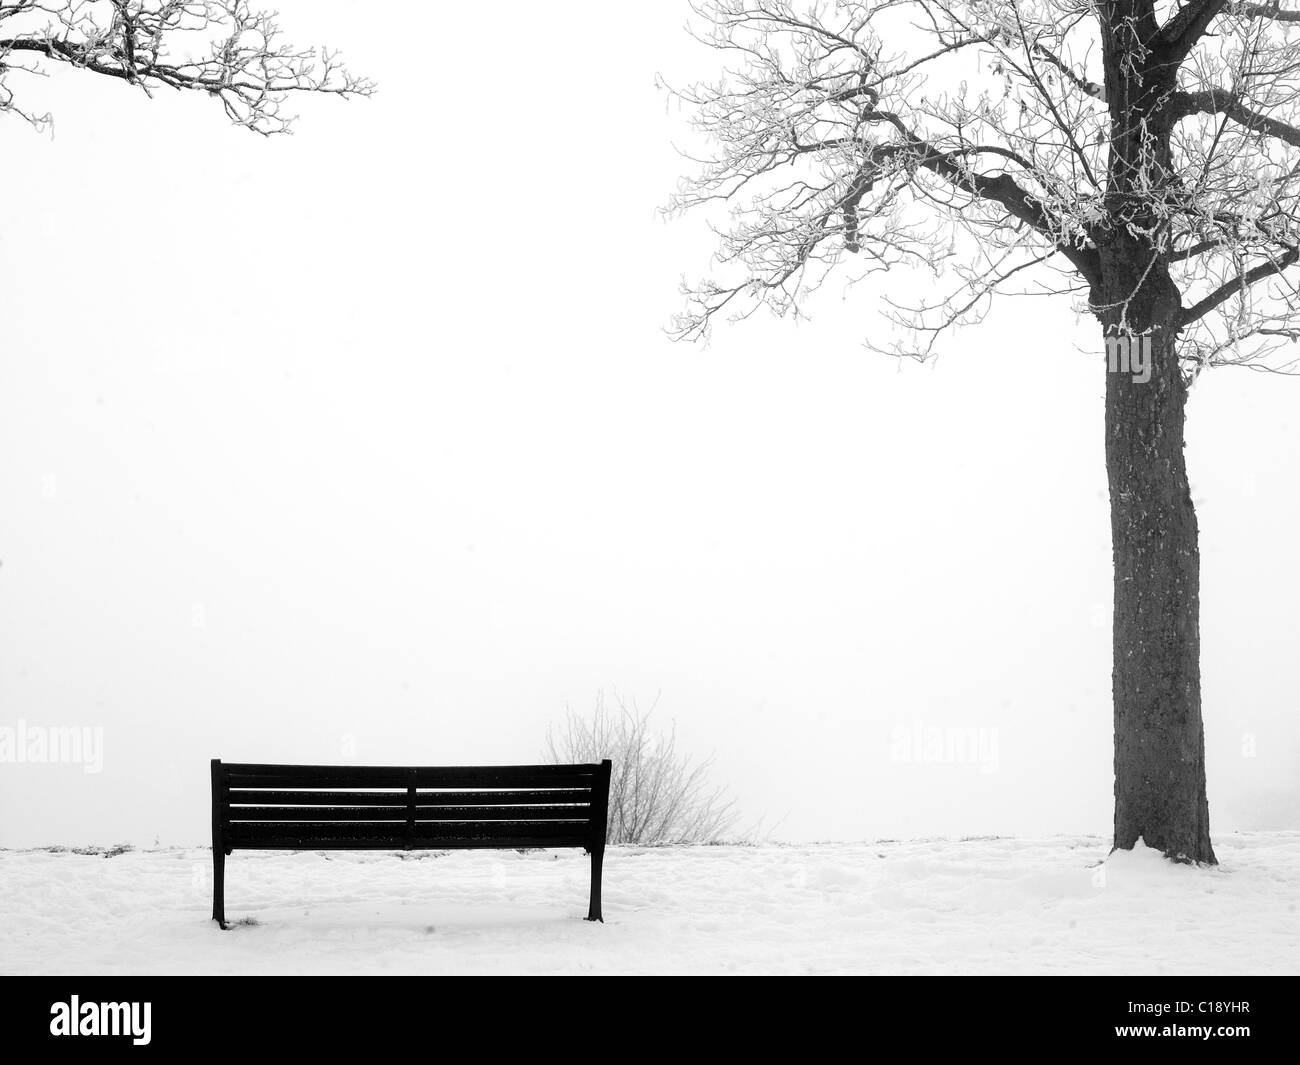 Bench in the snow. Stock Photo